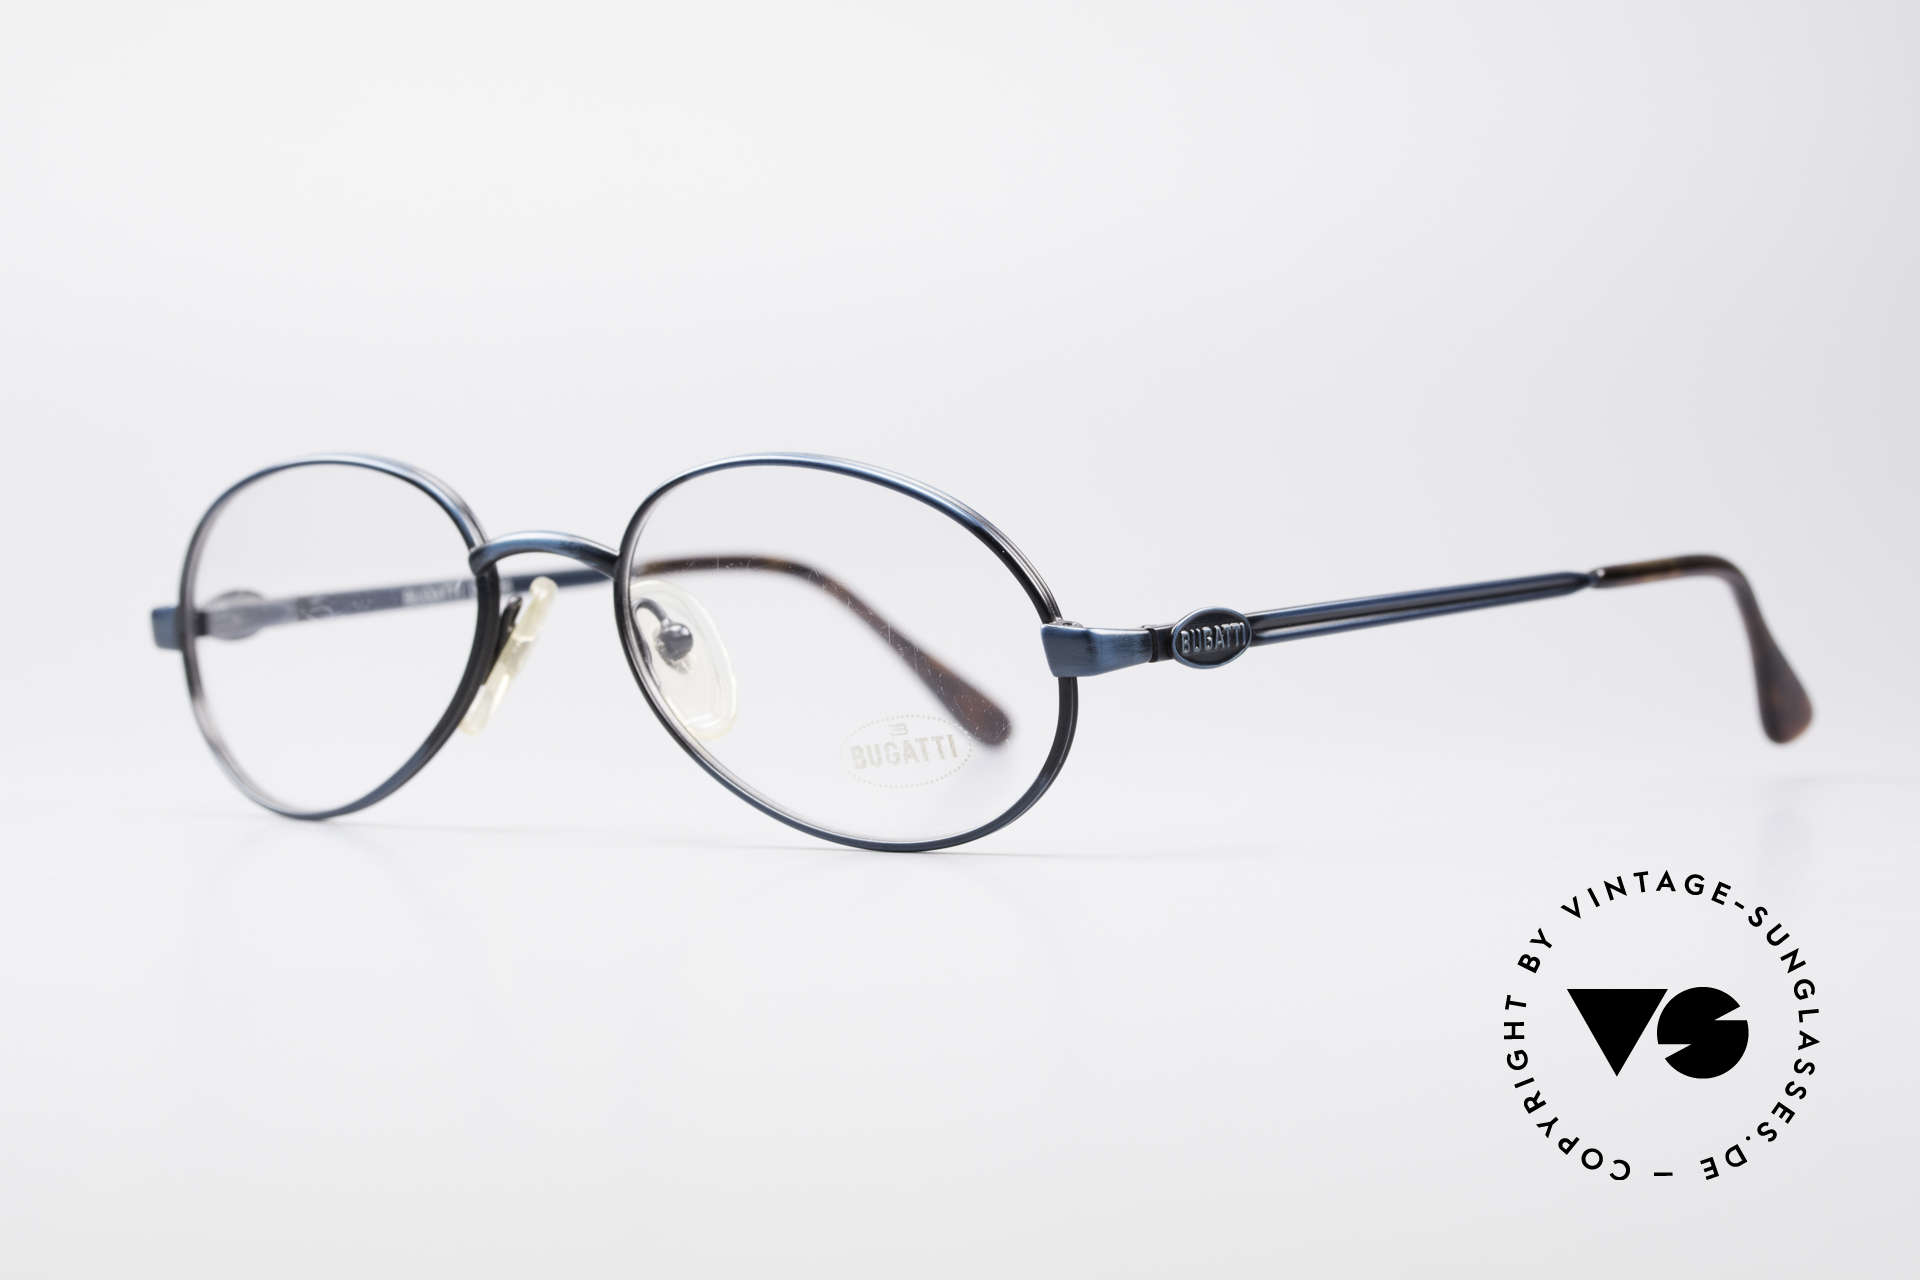 Bugatti 05728 Rare 90's Eyeglasses, steady metal frame with flexible spring hinges / arms, Made for Men